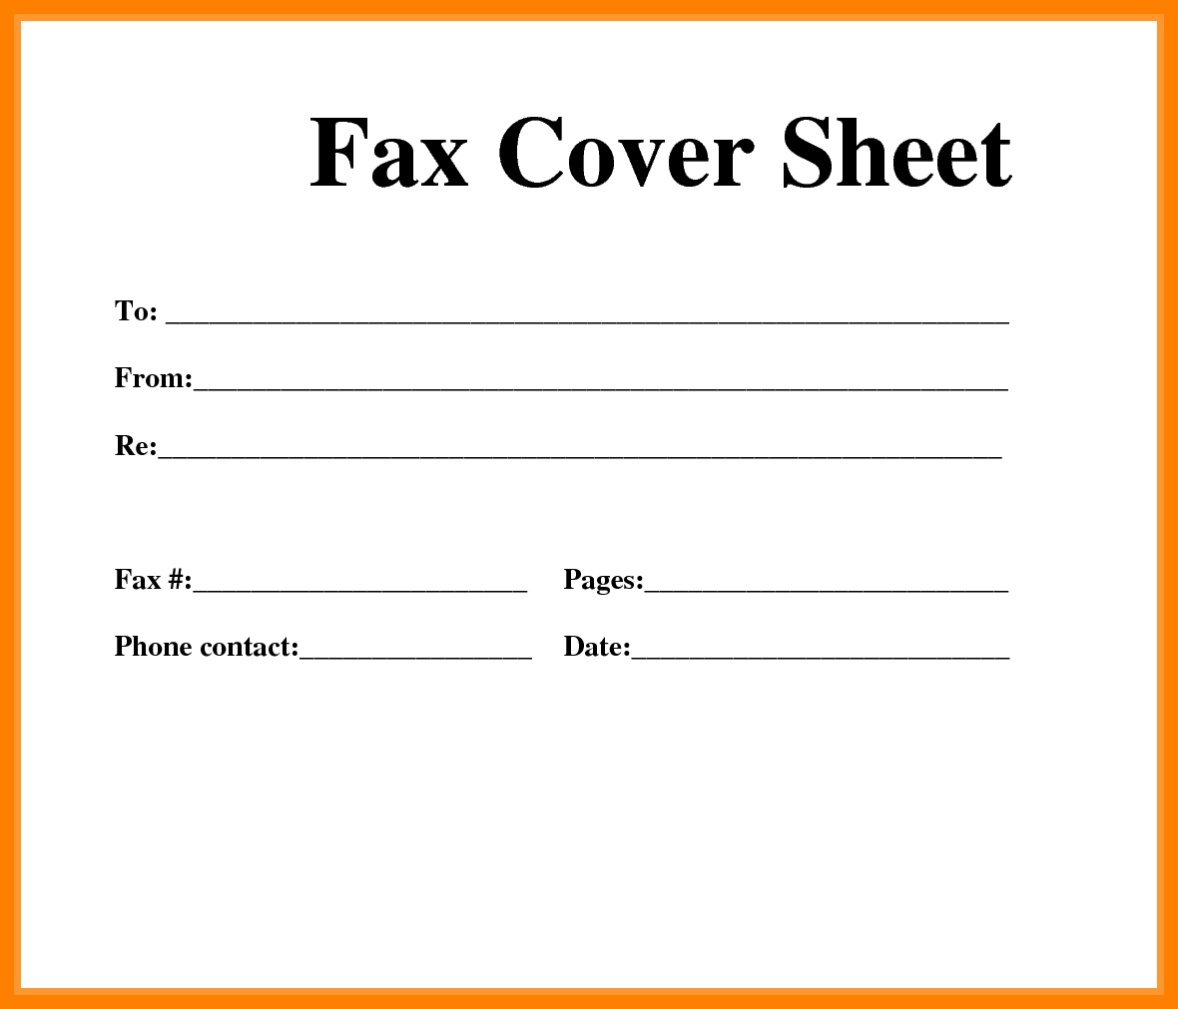 Printable Cover Sheet | Ellipsis - Free Printable Fax Cover Sheet